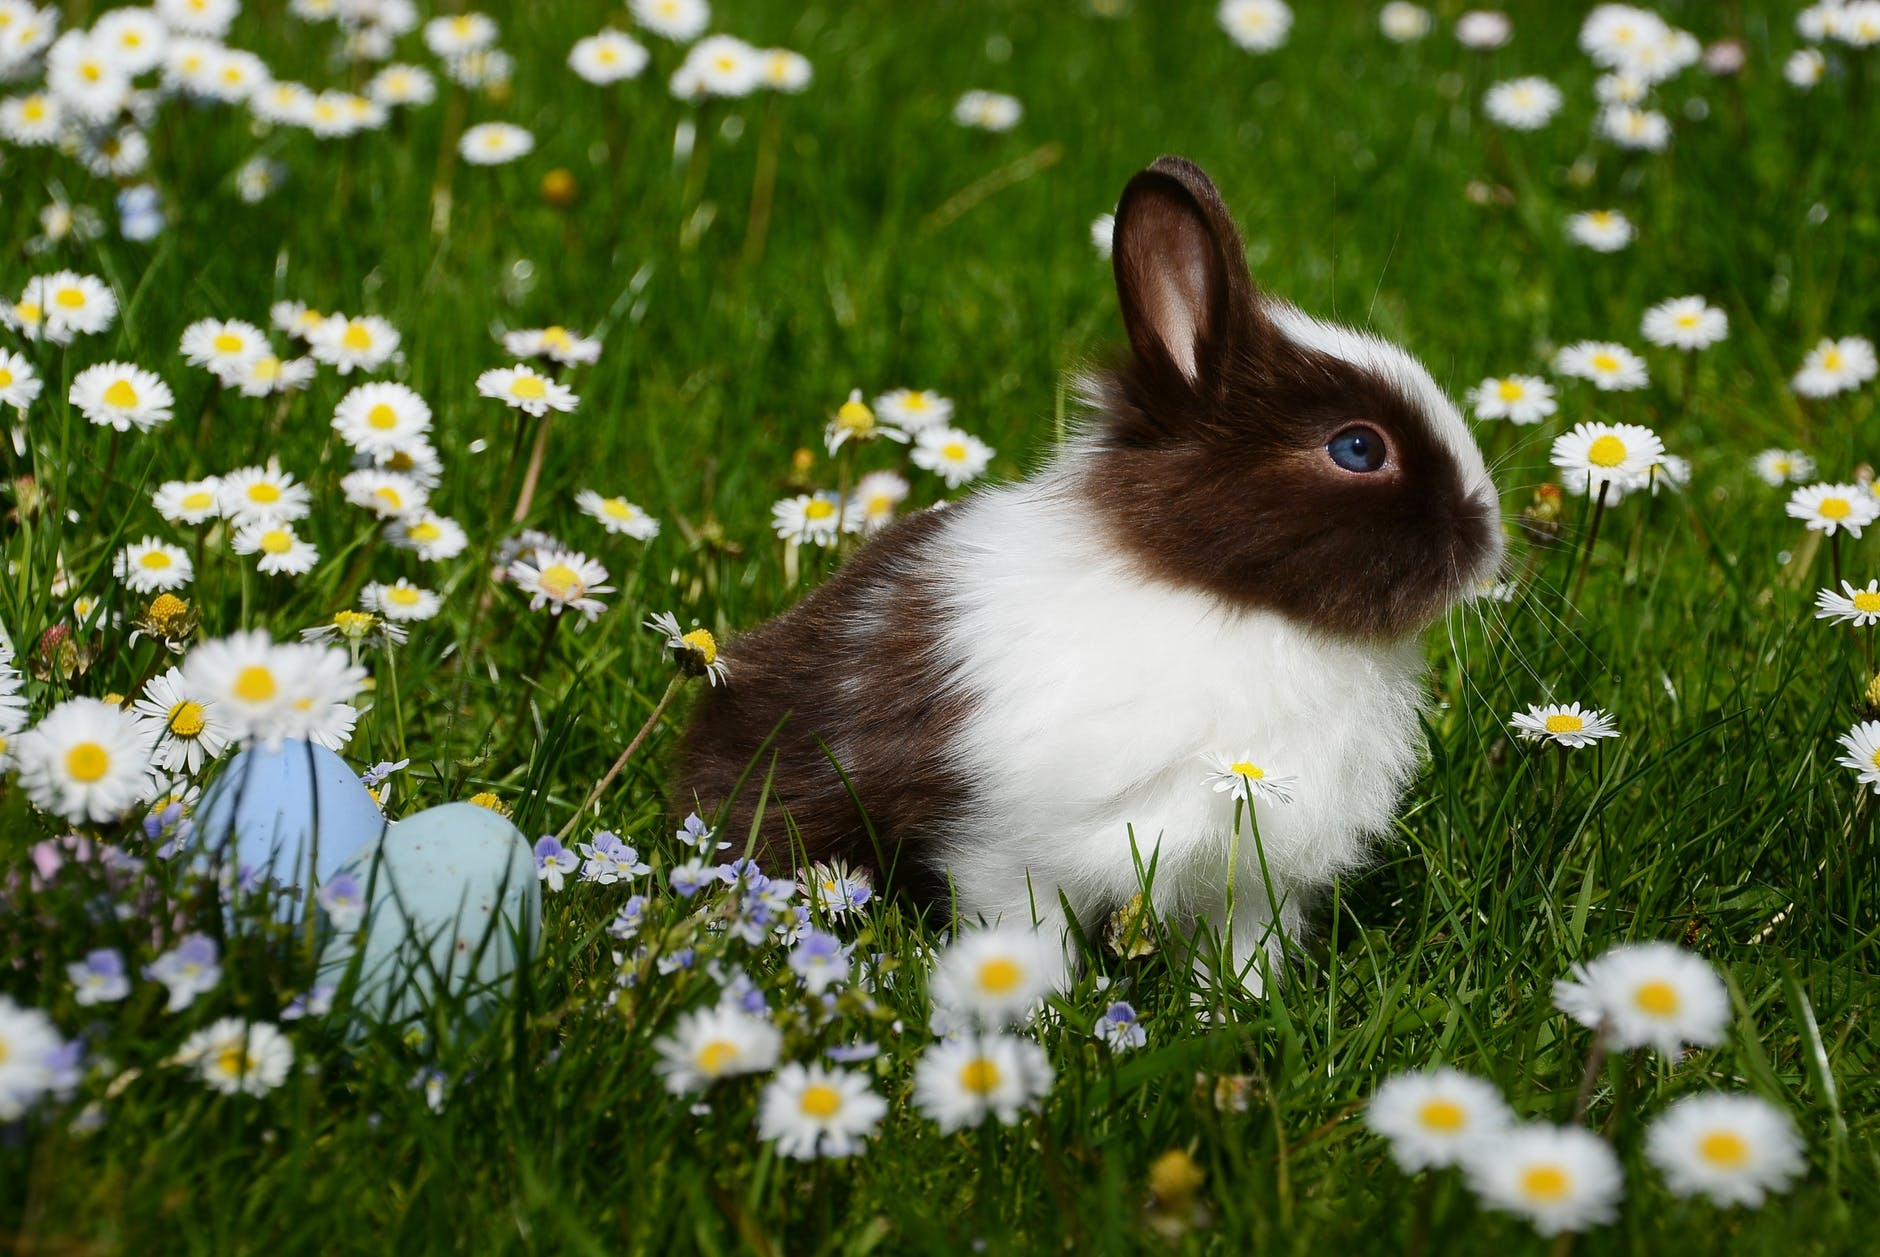 A brown and white rabbit with some eggs in a field of wildflowers.